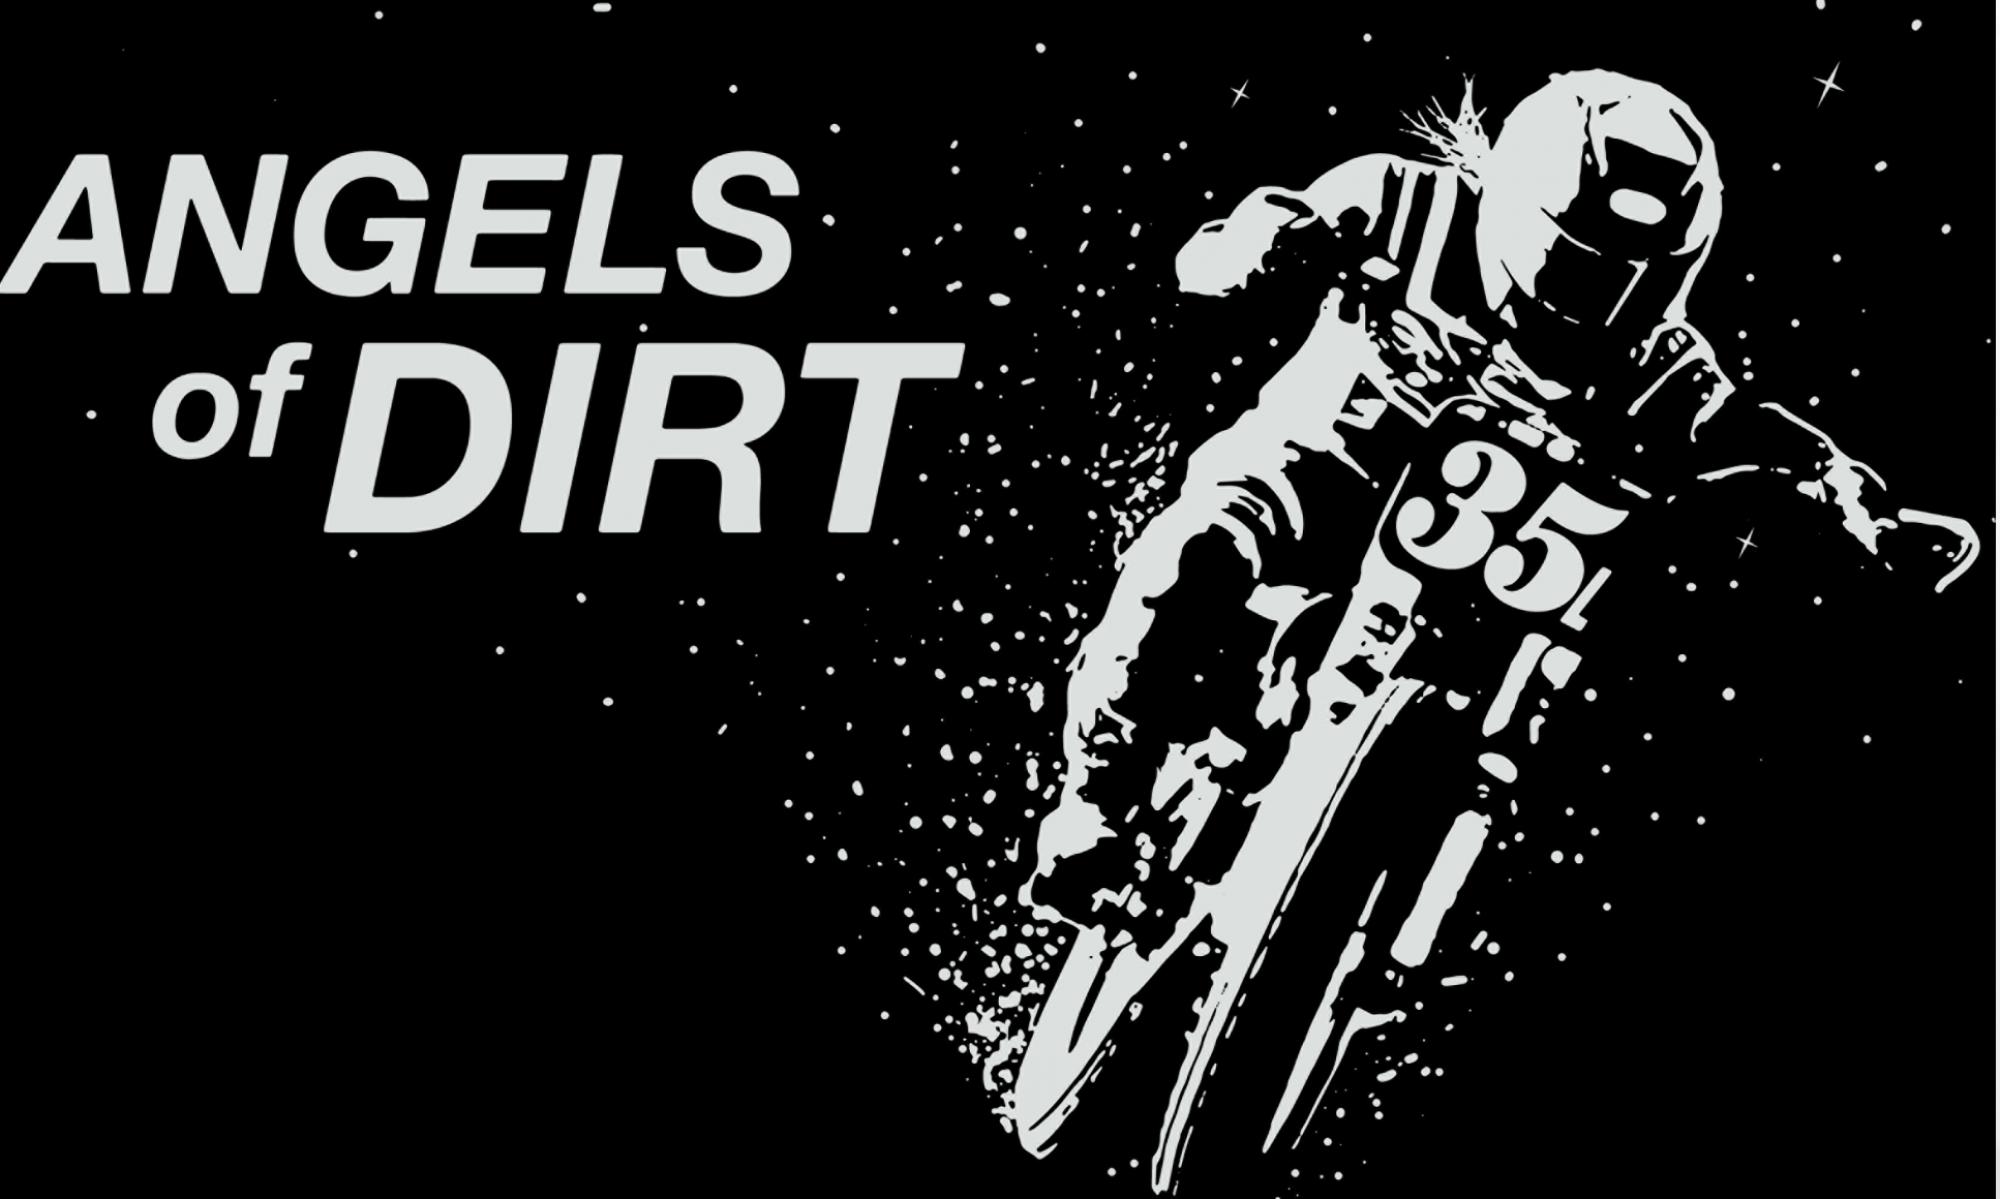 Angels of Dirt  is a brand new documentary from filmmaker Wendy Schneider. Started over ten years ago, the film looks at the culture of young women in moto racing.